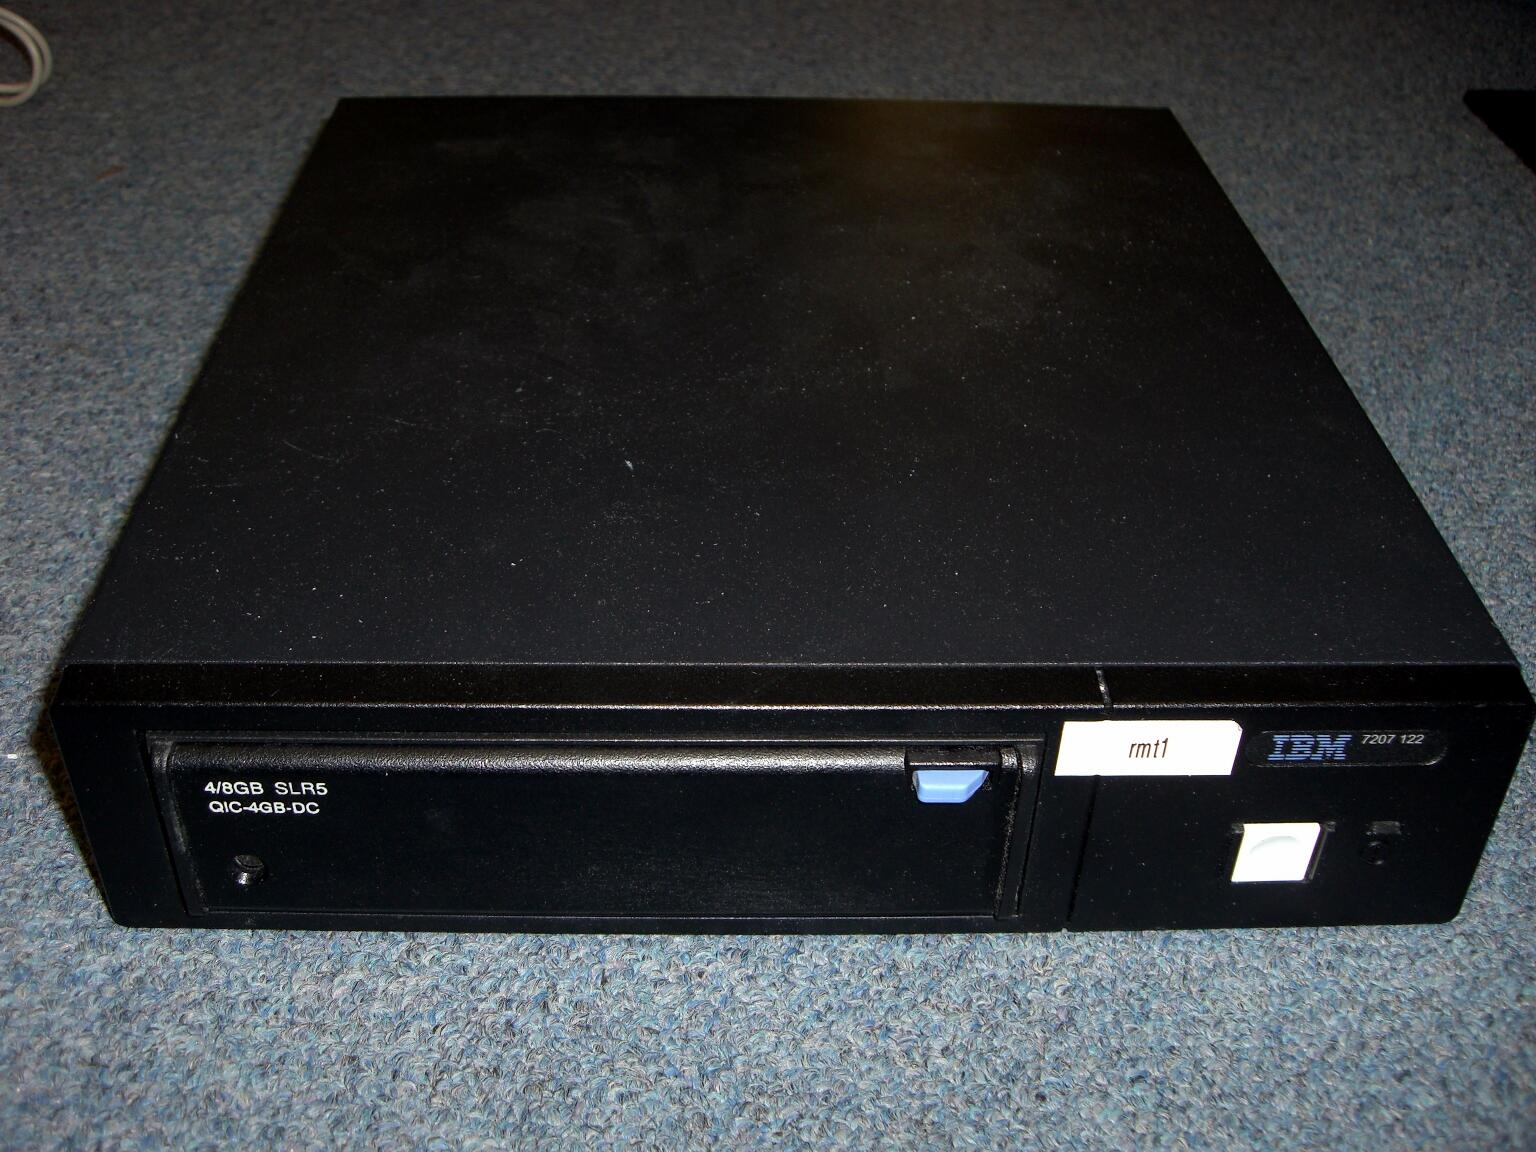 IBM 7207-122 4/8GB QIC Tape Drive